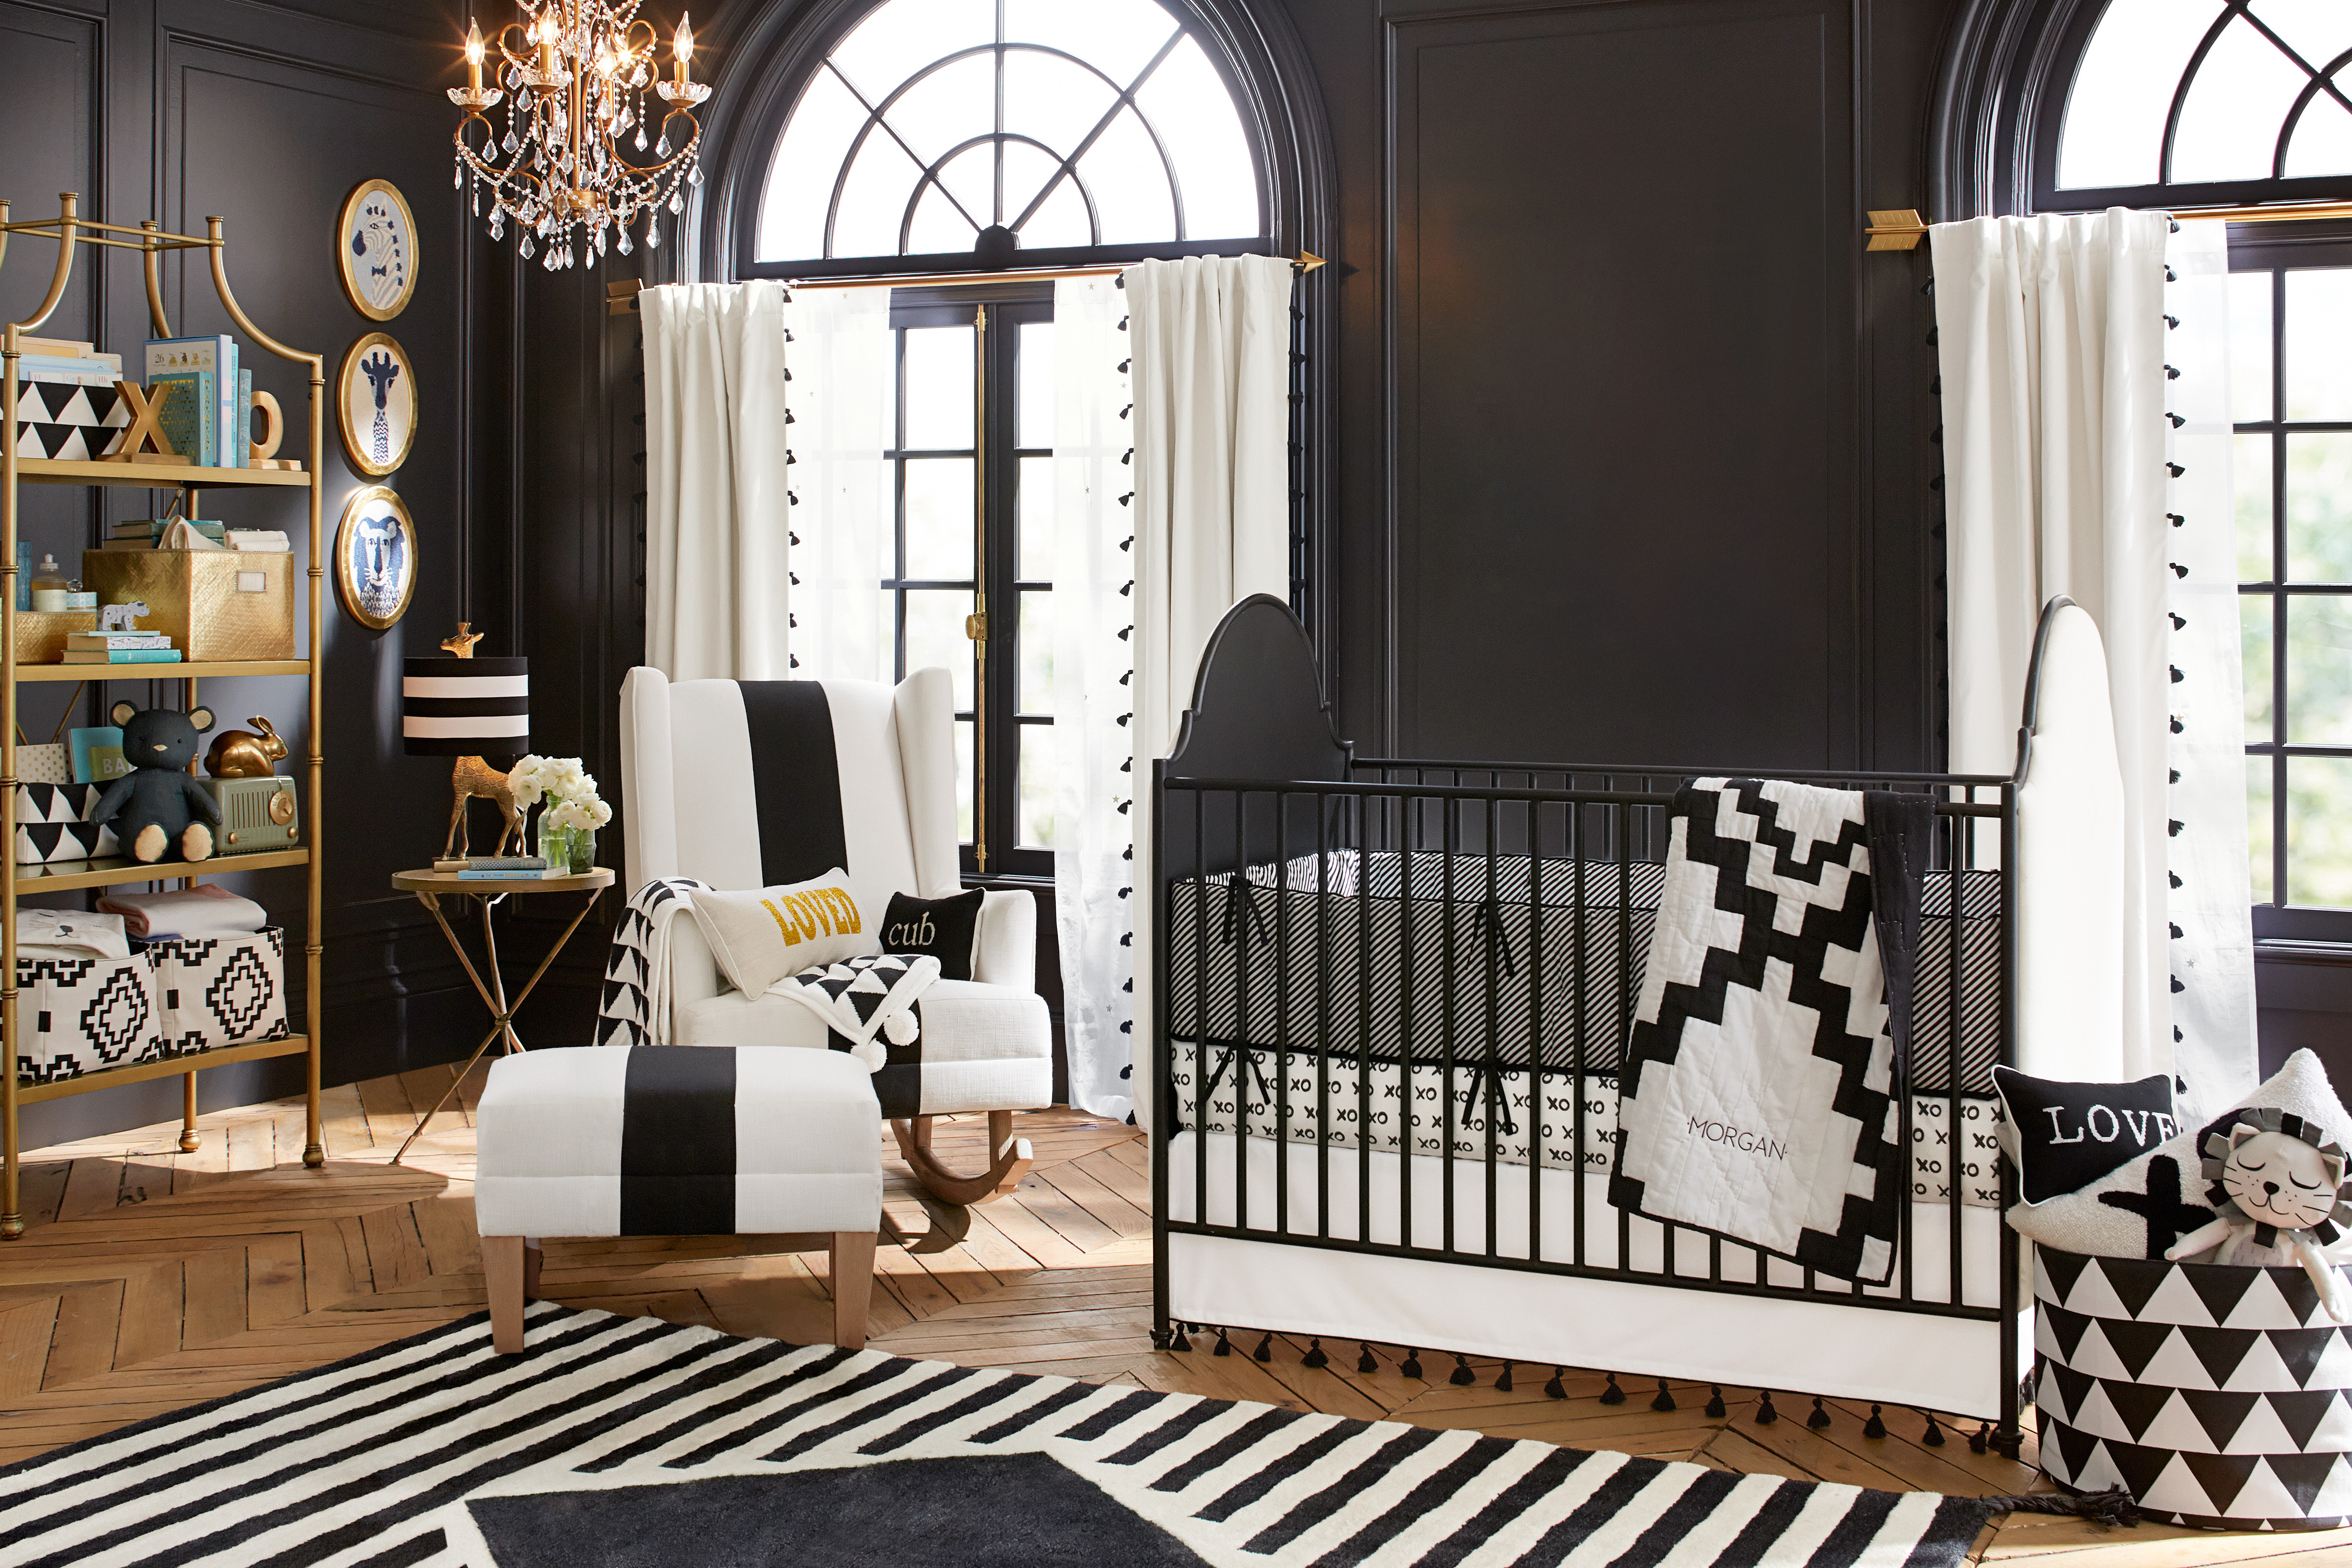 Baby cribs pottery barn - The Crib Is Styled With The Tassel Crib Skirt Xoxo Crib Fitted Sheet Diamond Toddler Quilt And Candy Stripe Bumper Rounding Out The Room Is The Diamond